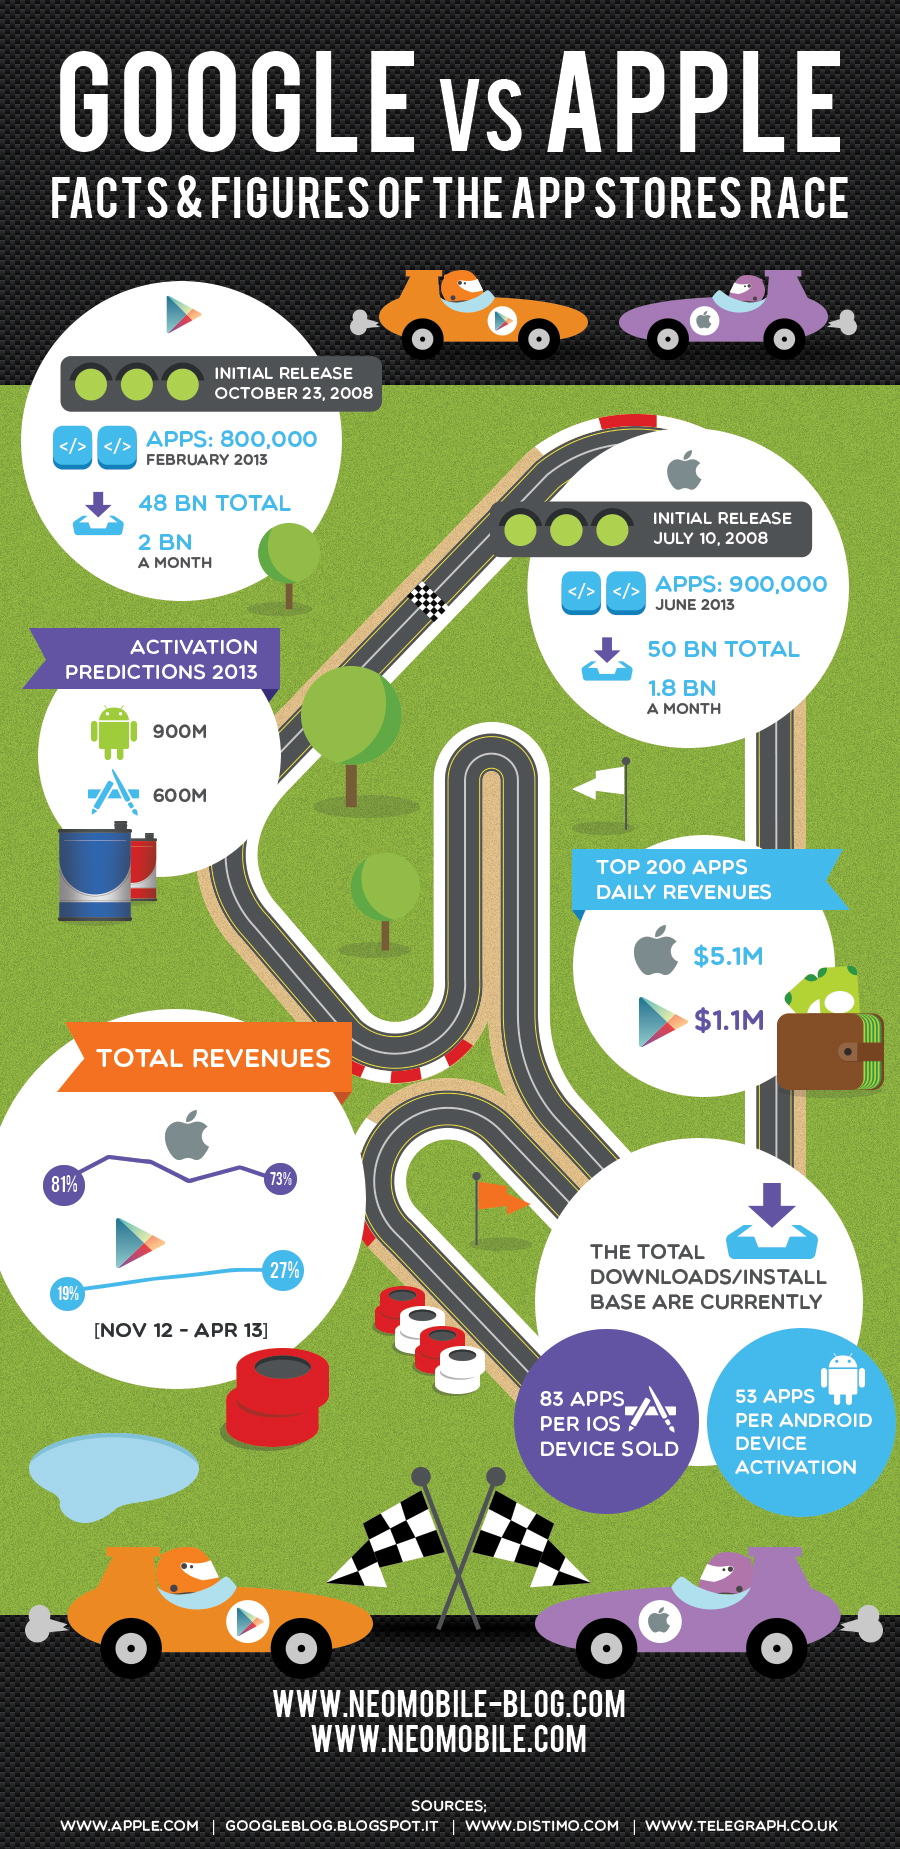 Google Vs Apple Facts and Figures of the Apps Stores Race Infographic